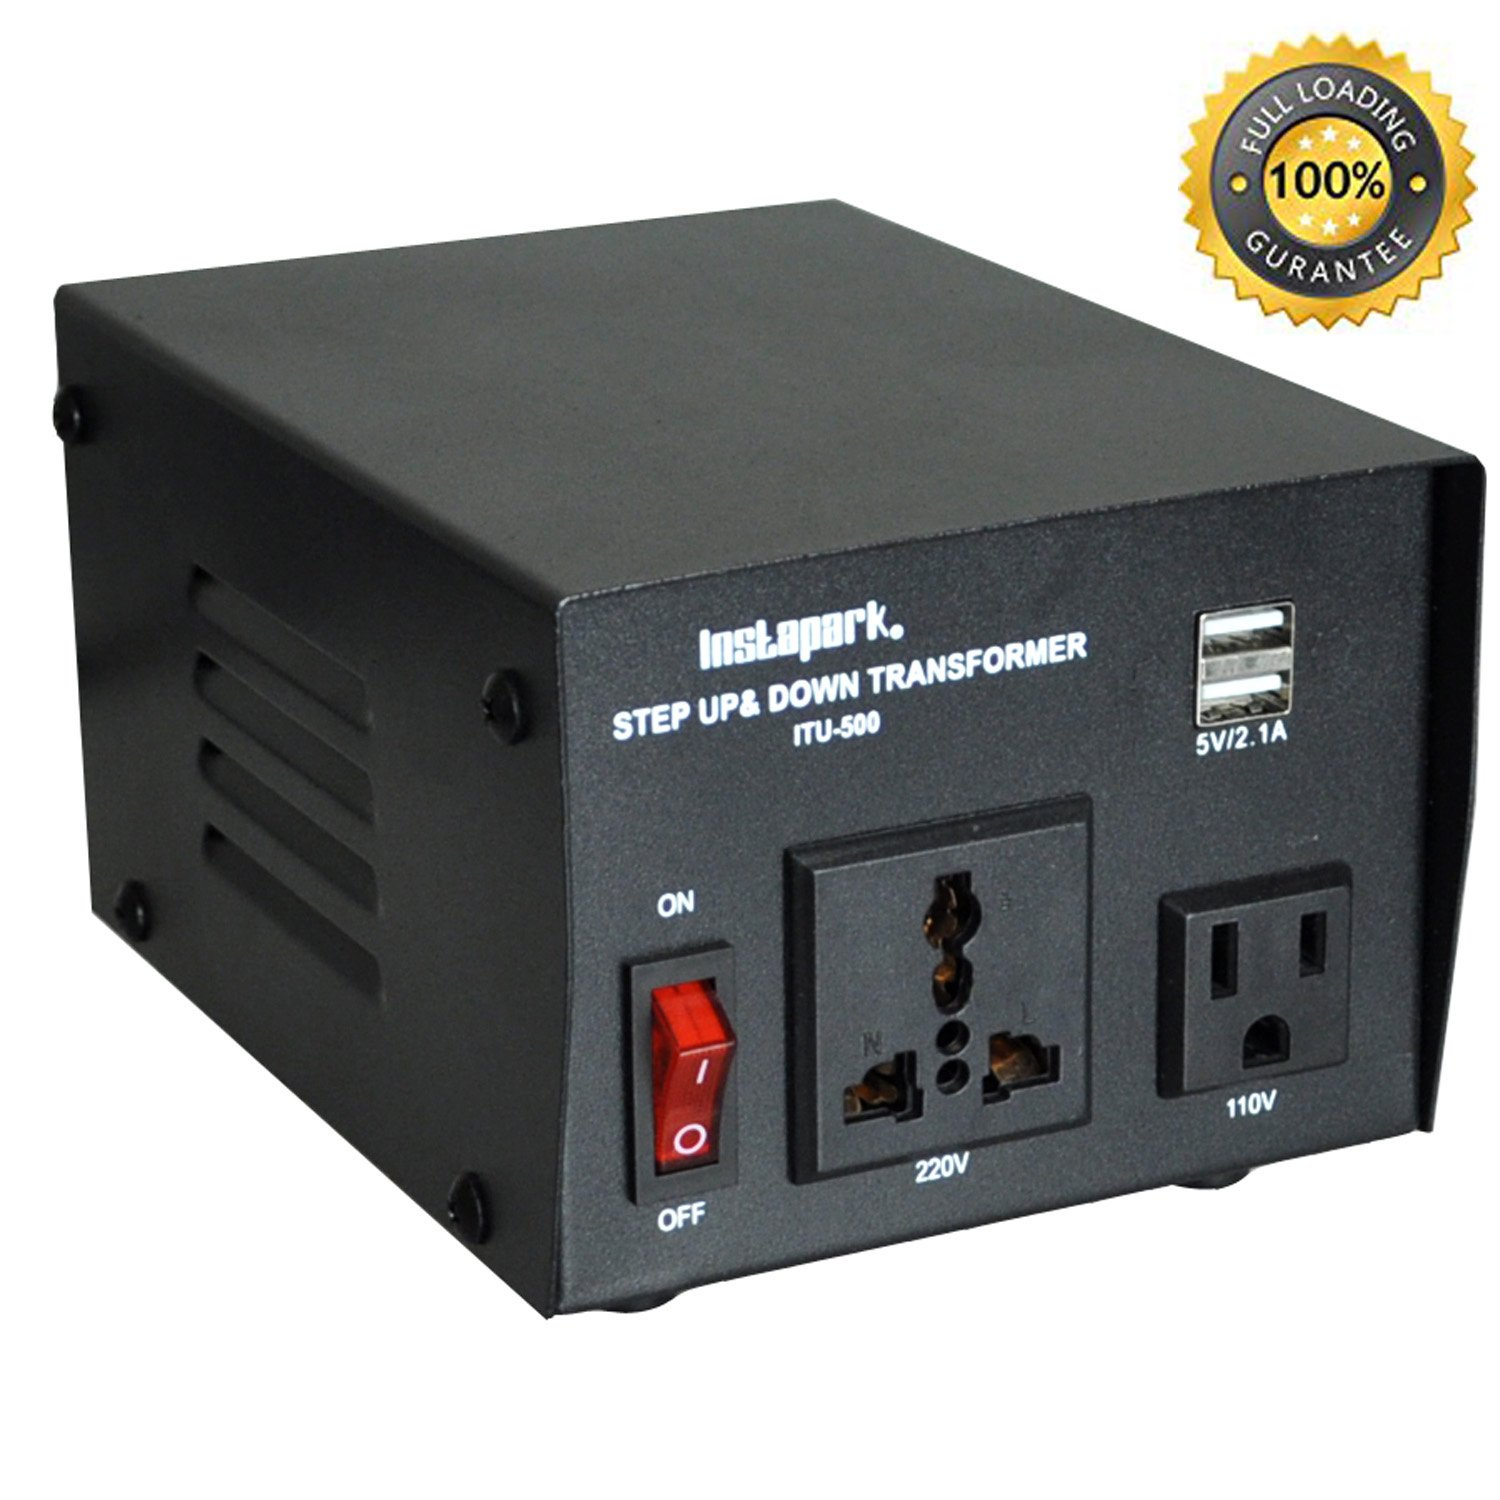 Instapark ITU-500 Voltage Converter: AC 110V / 220V 500W Step-up and Step-Down AC Voltage Transformer with Maximum Load Capacity (MLC) - 500 Watts